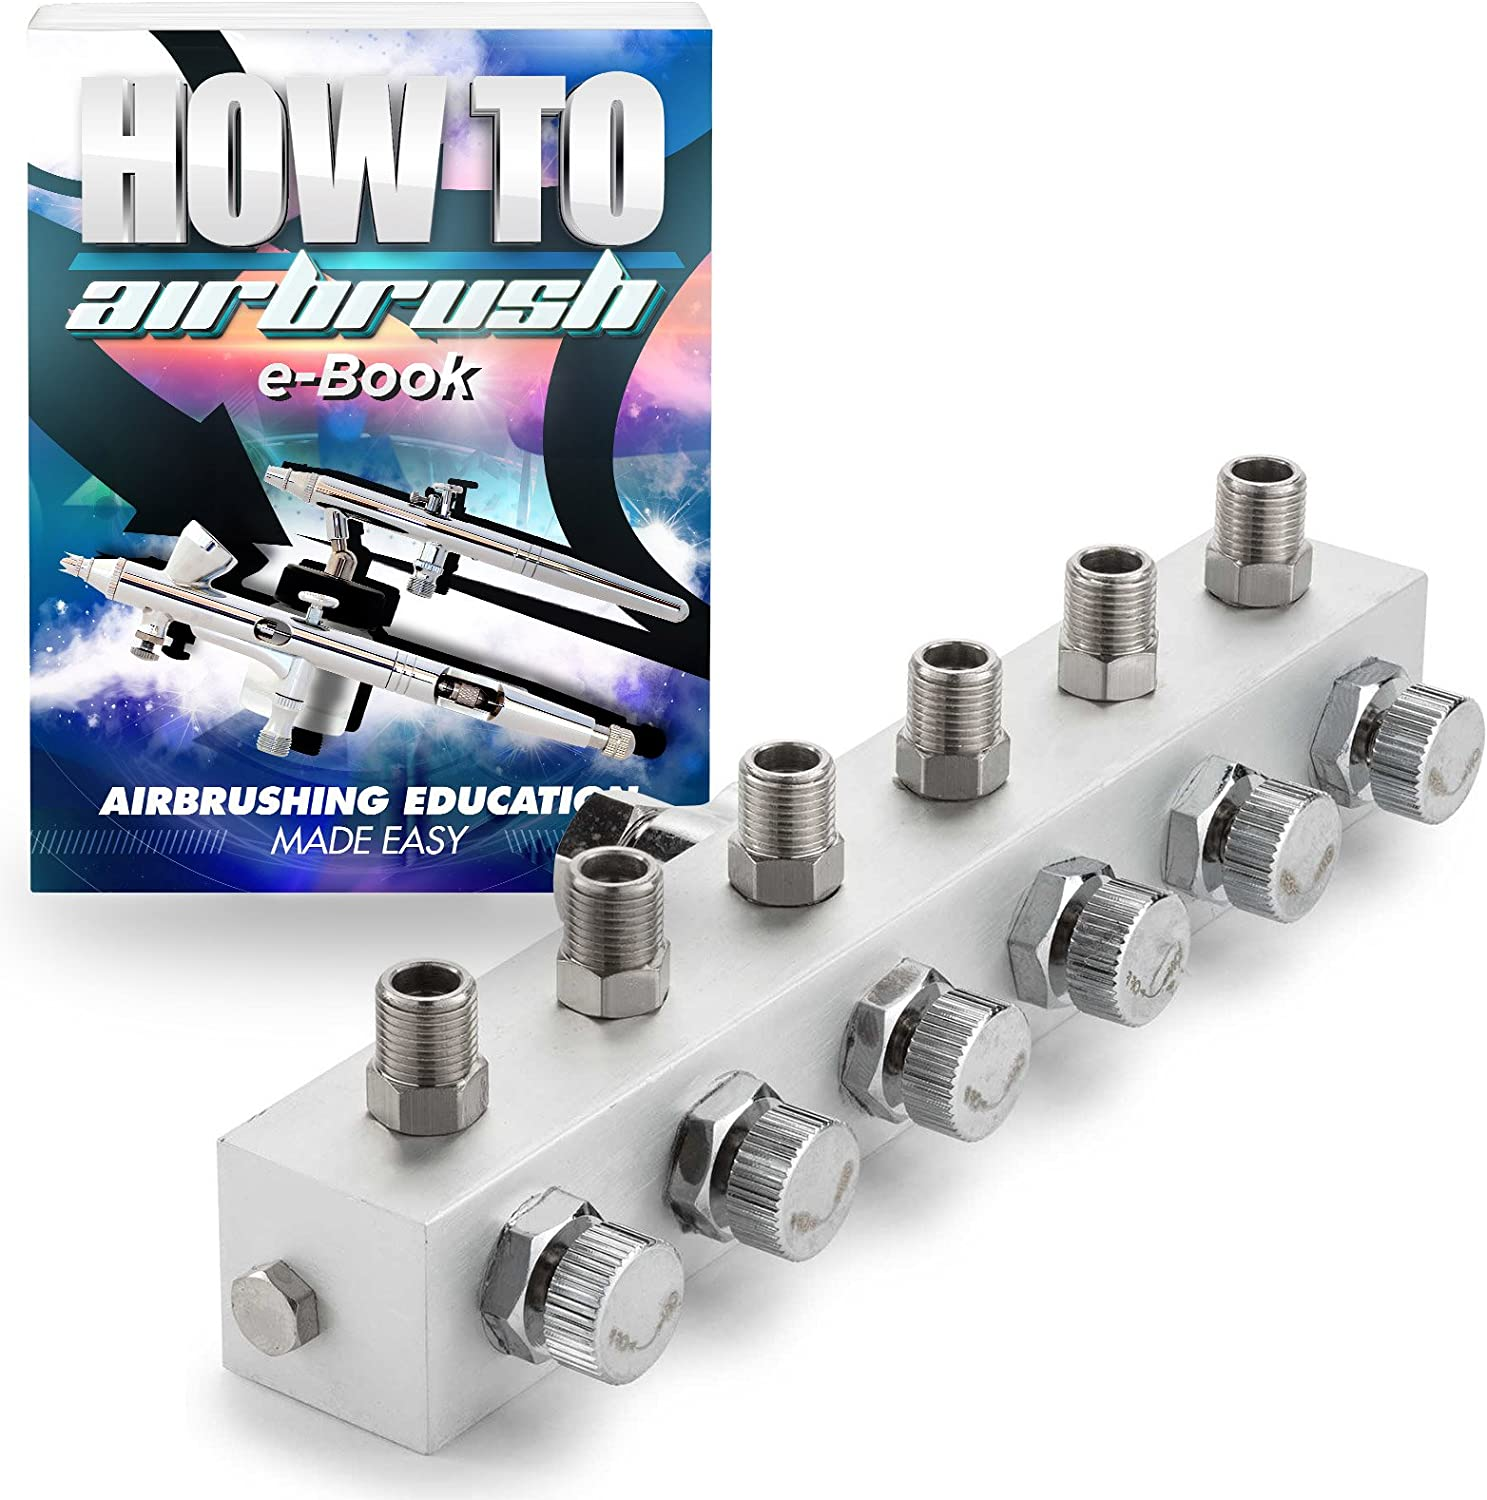 Braided Air Hose Essential Airbrush Accessories Kit Including 6 ft Mini Inline Filter Coupler /& Splitter Manifold Quick Disconnect